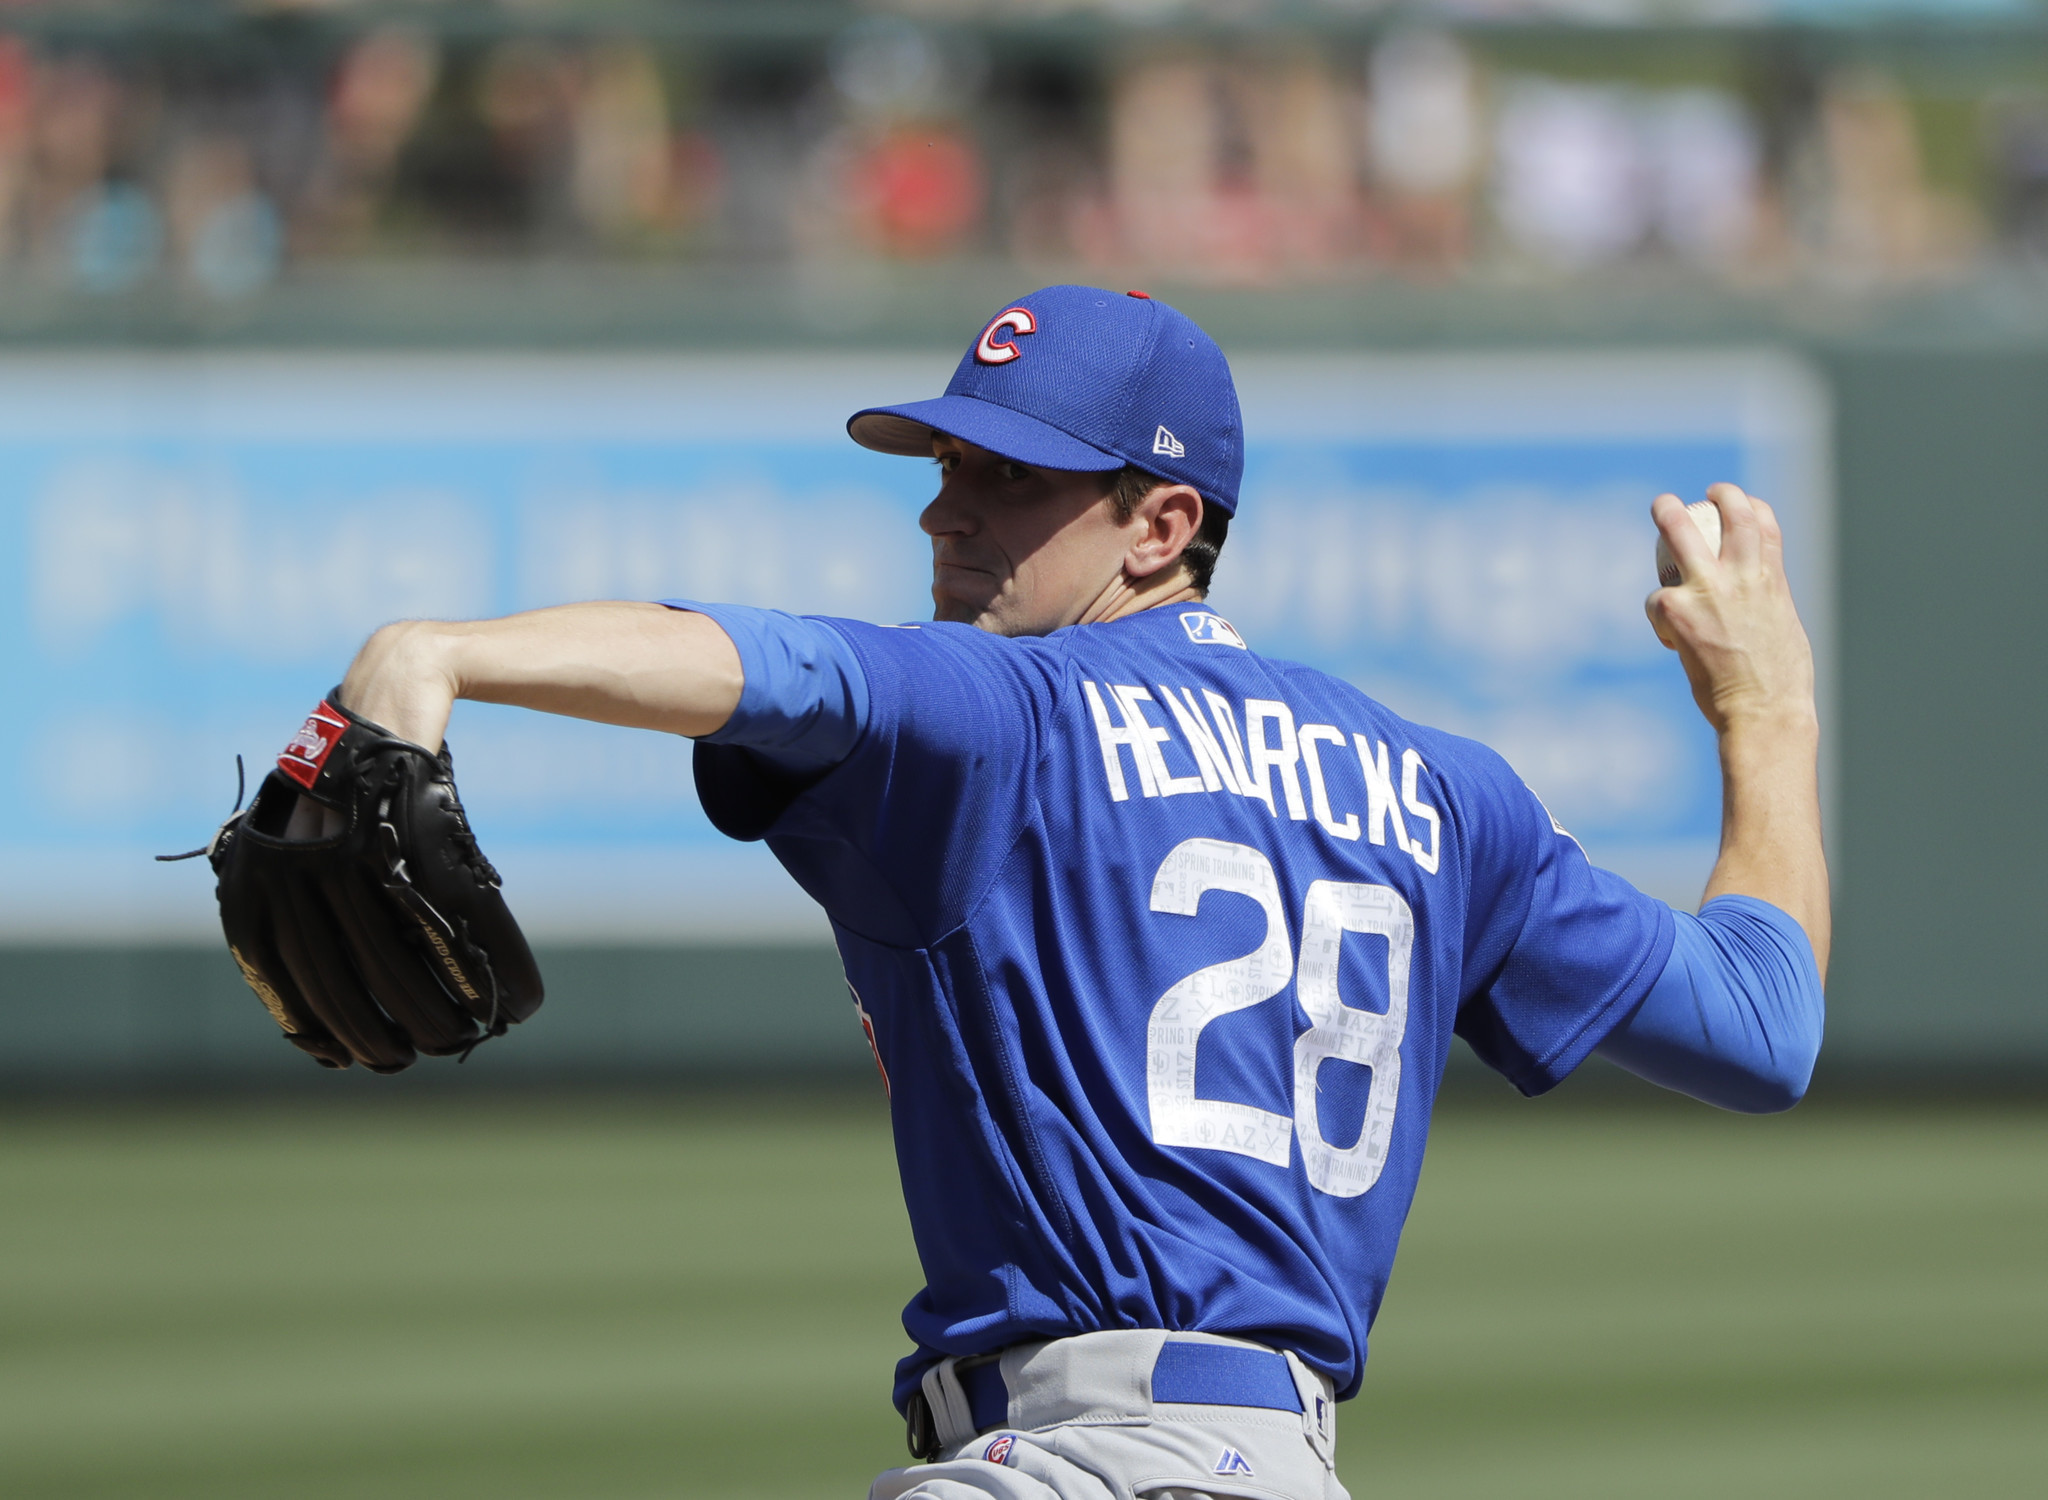 Ct-kyle-hendricks-rotation-cubs-bits-spt-0324-20170323